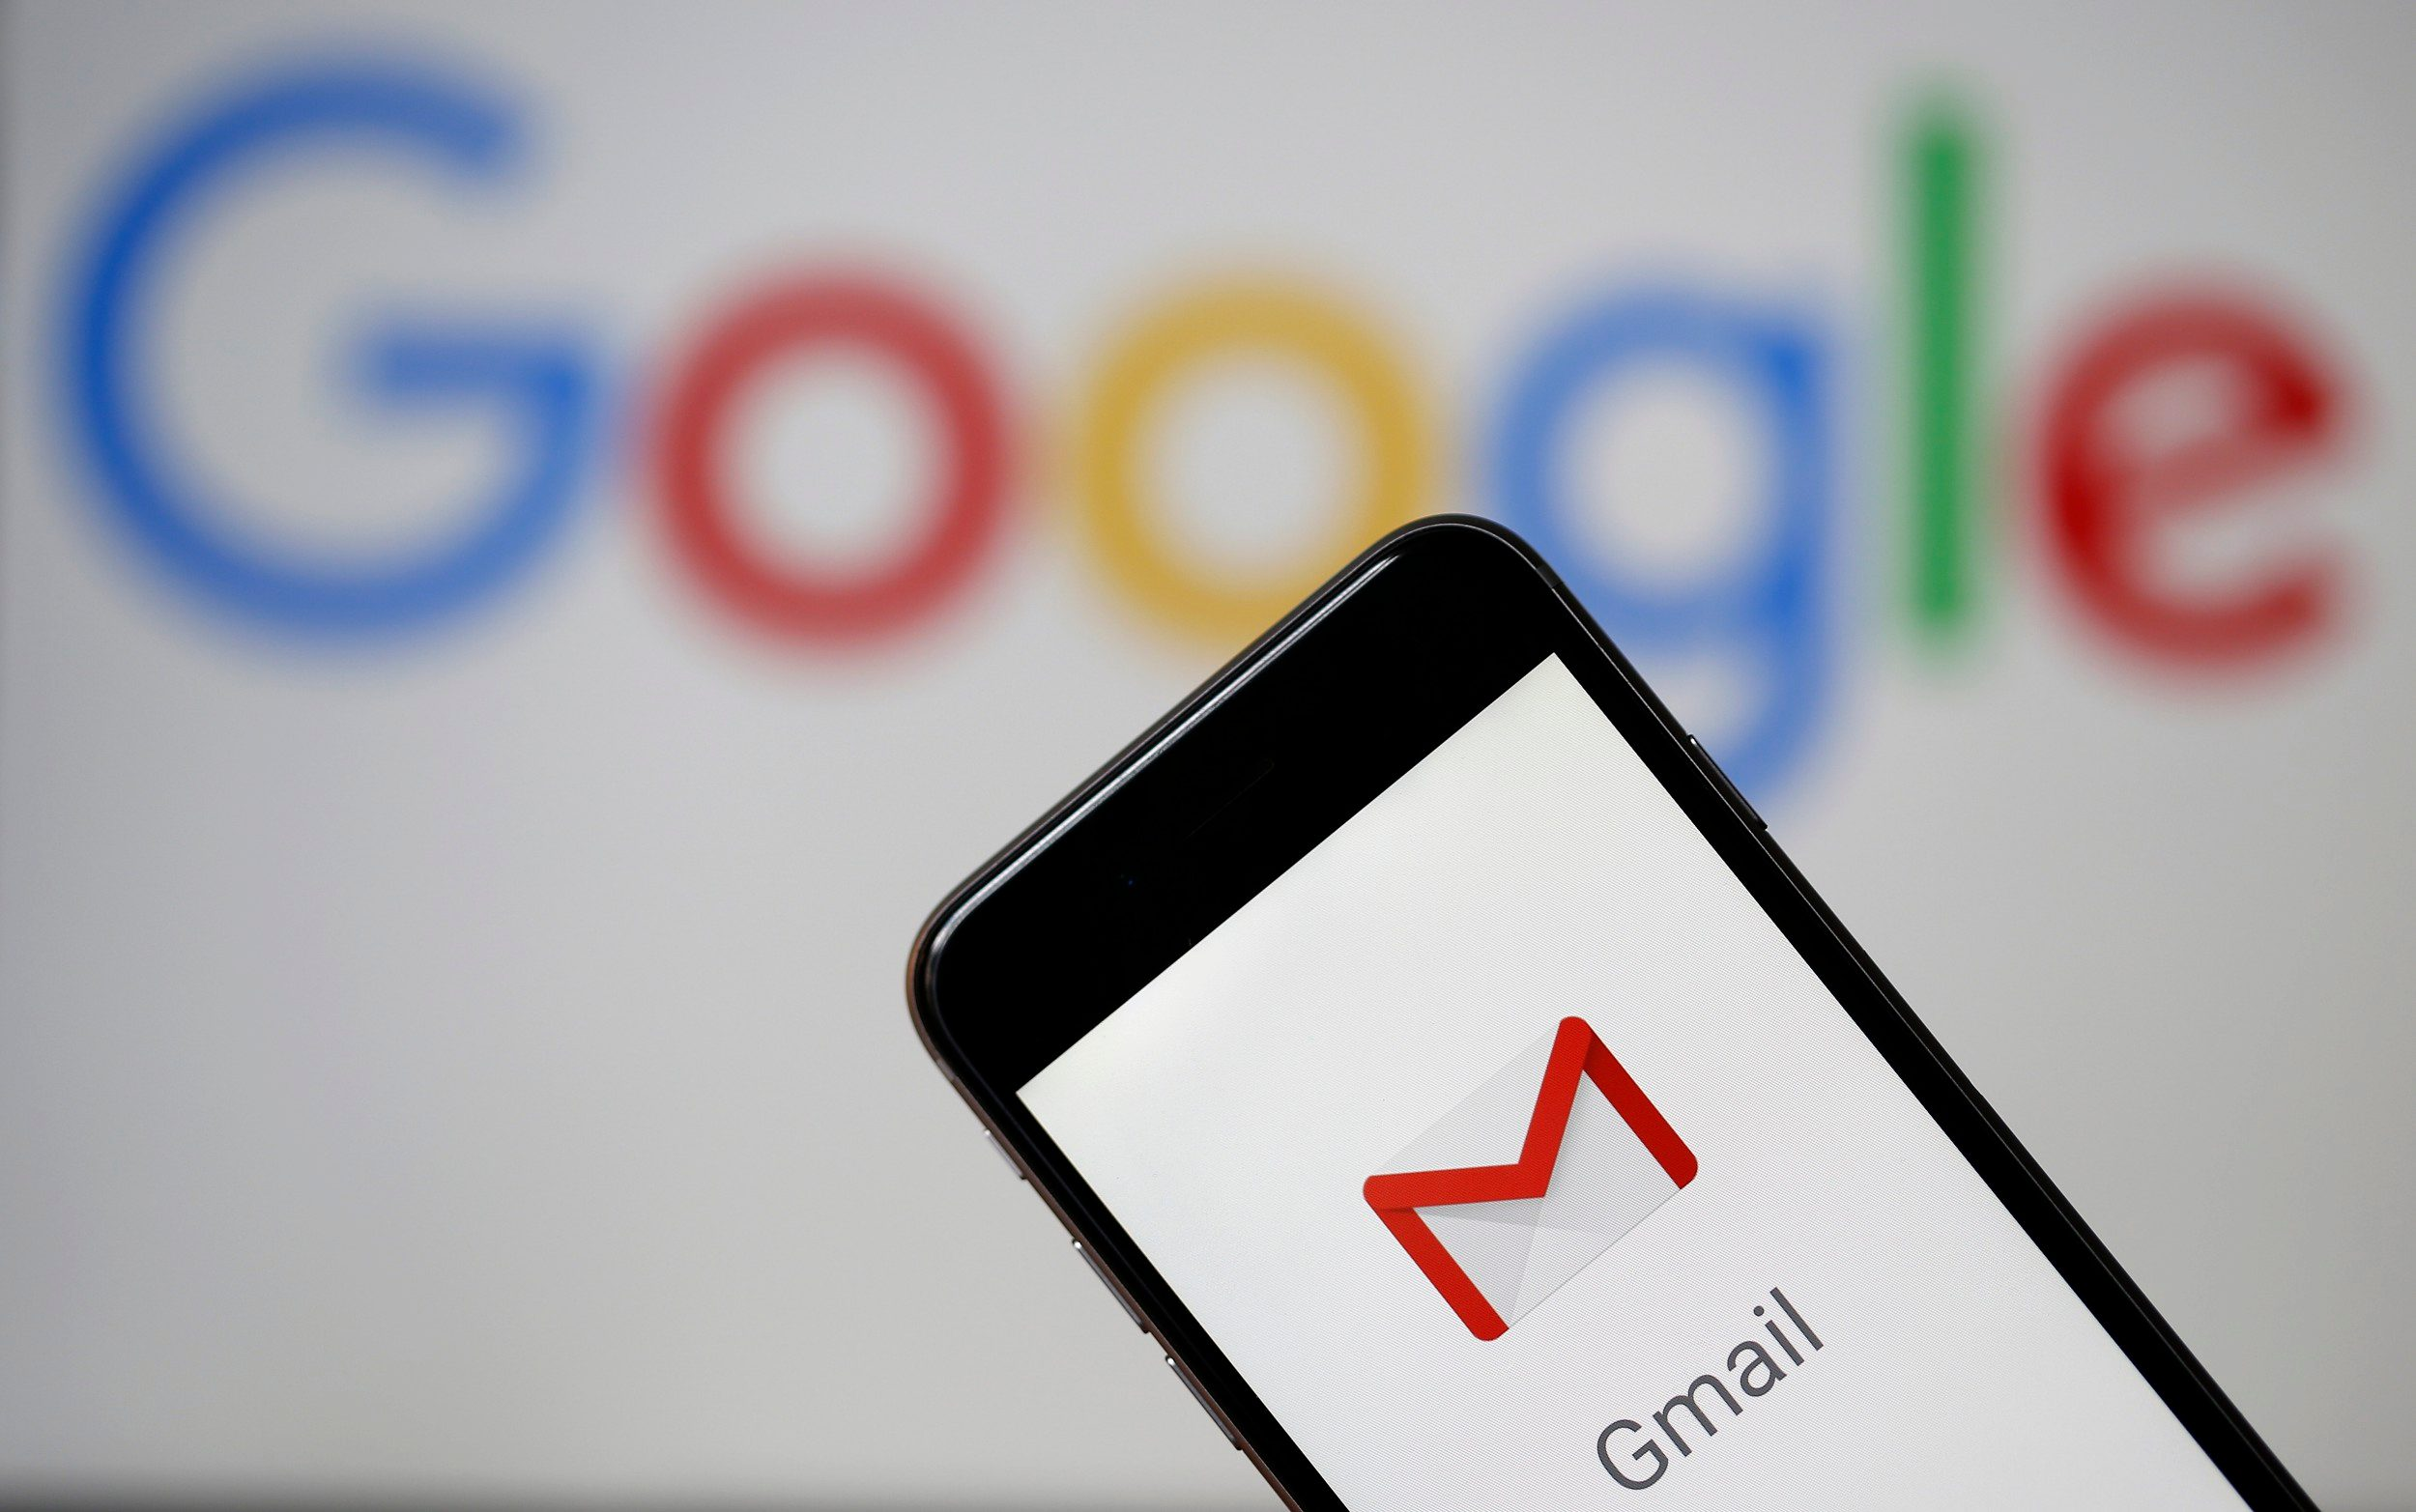 Fix Gmail keeps stopping issues